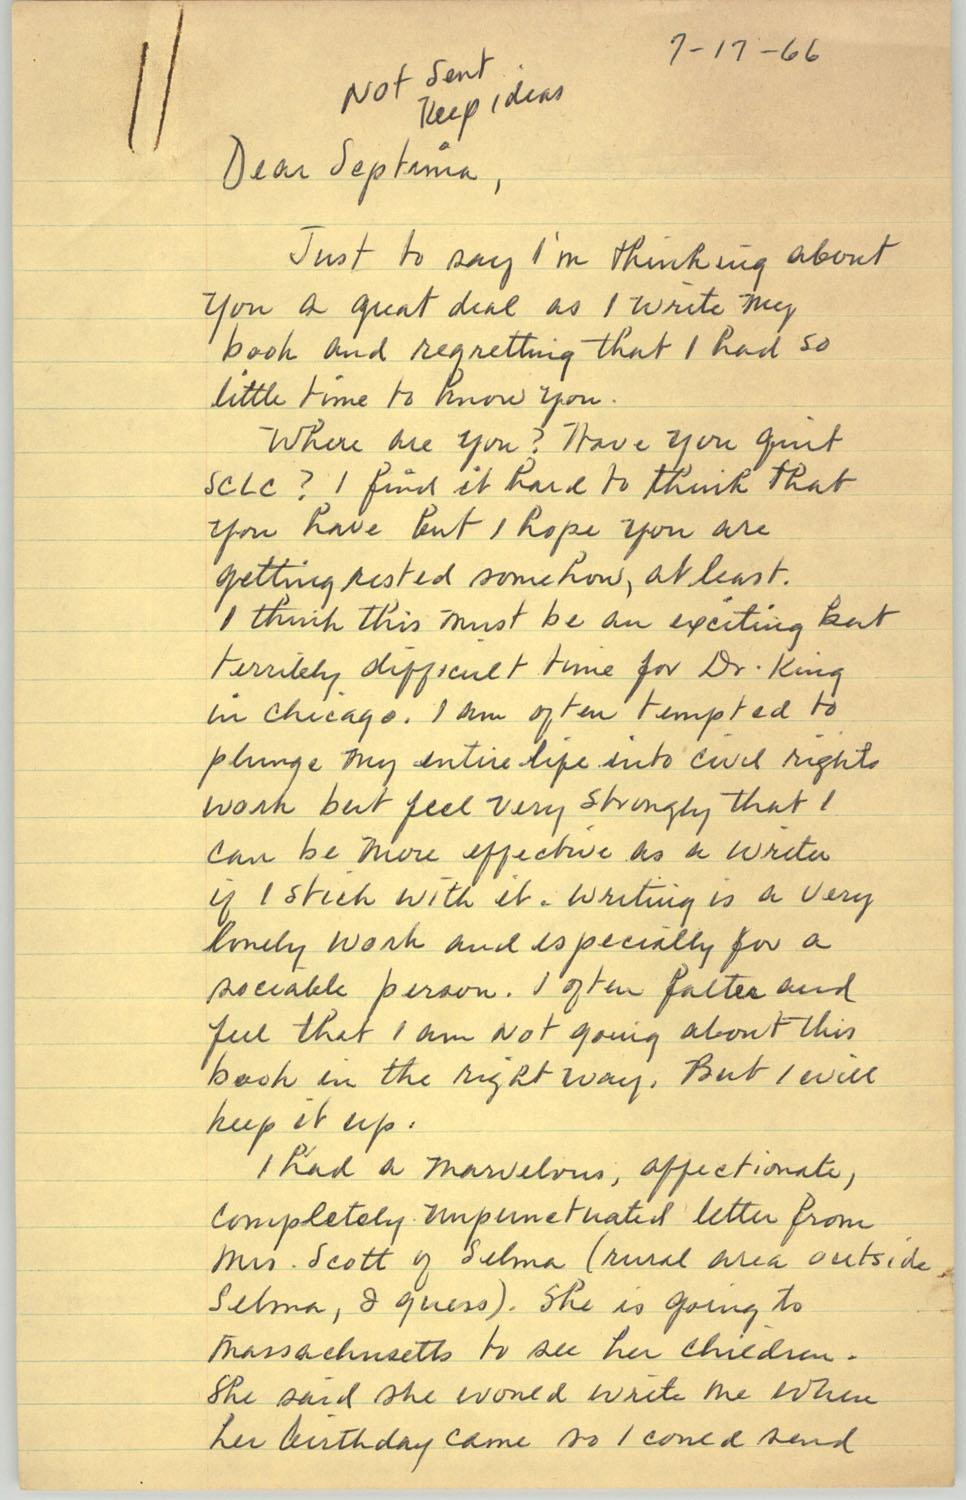 Letter from Josephine Rider to Septima P. Clark, July 17, 1966